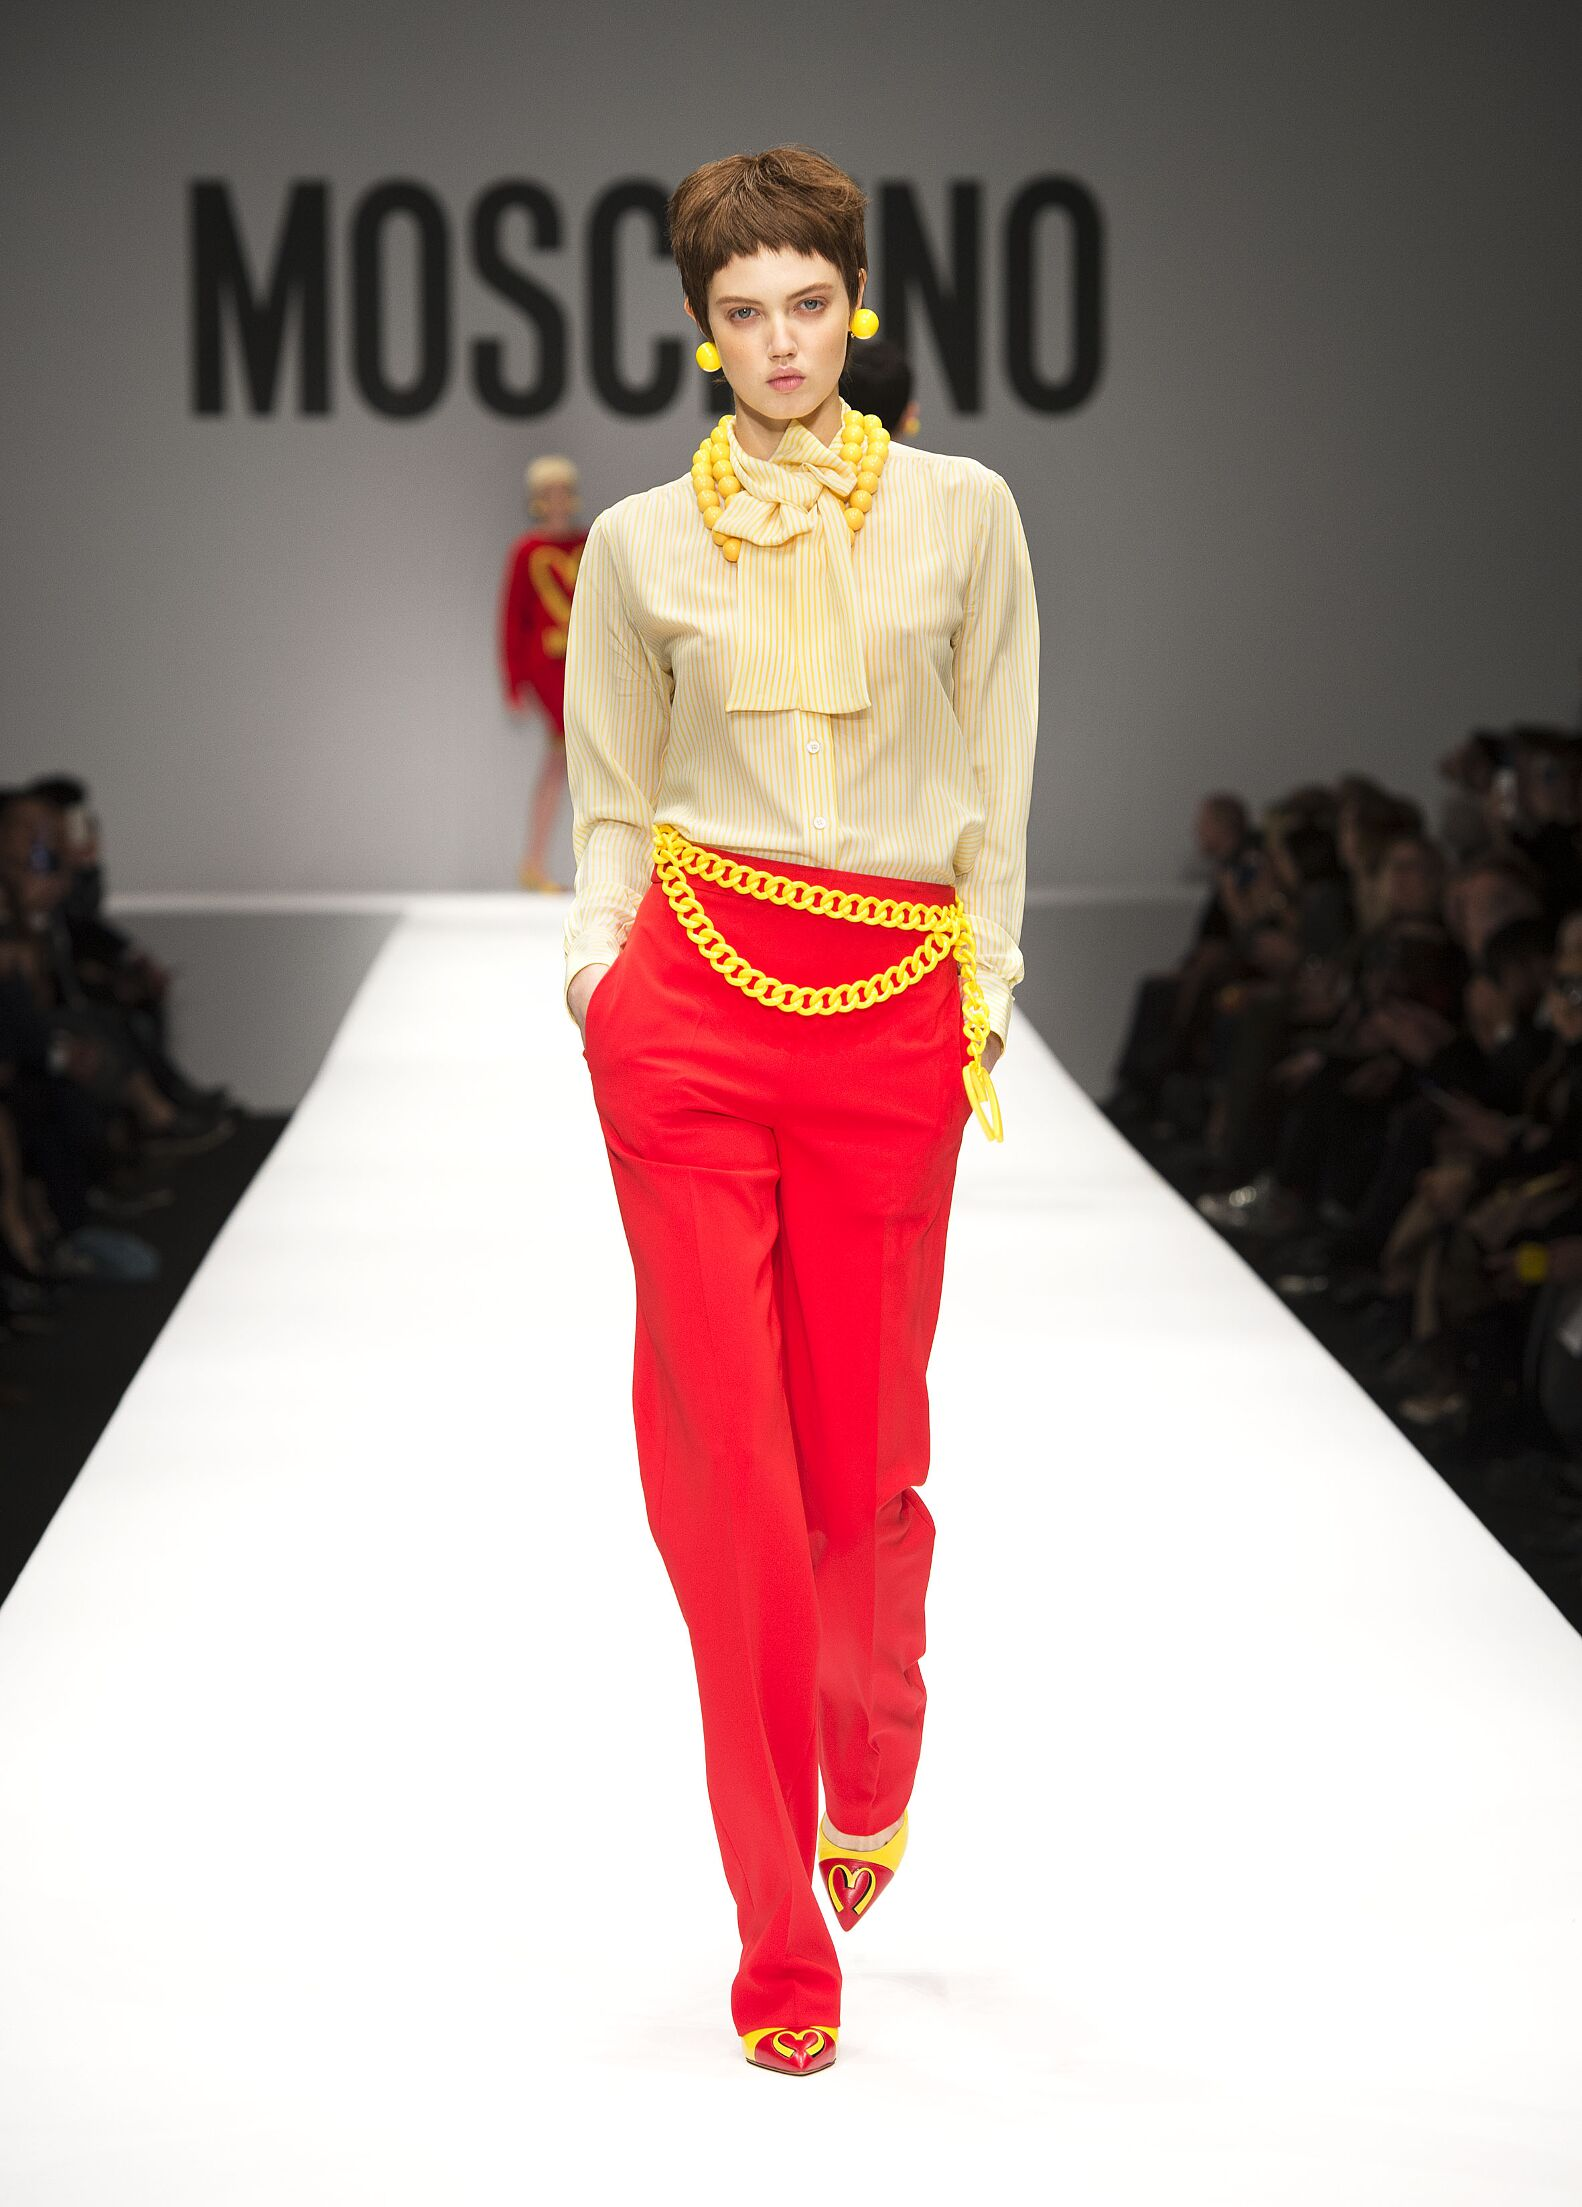 2014 2015 Winter Fashion Trends Moschino